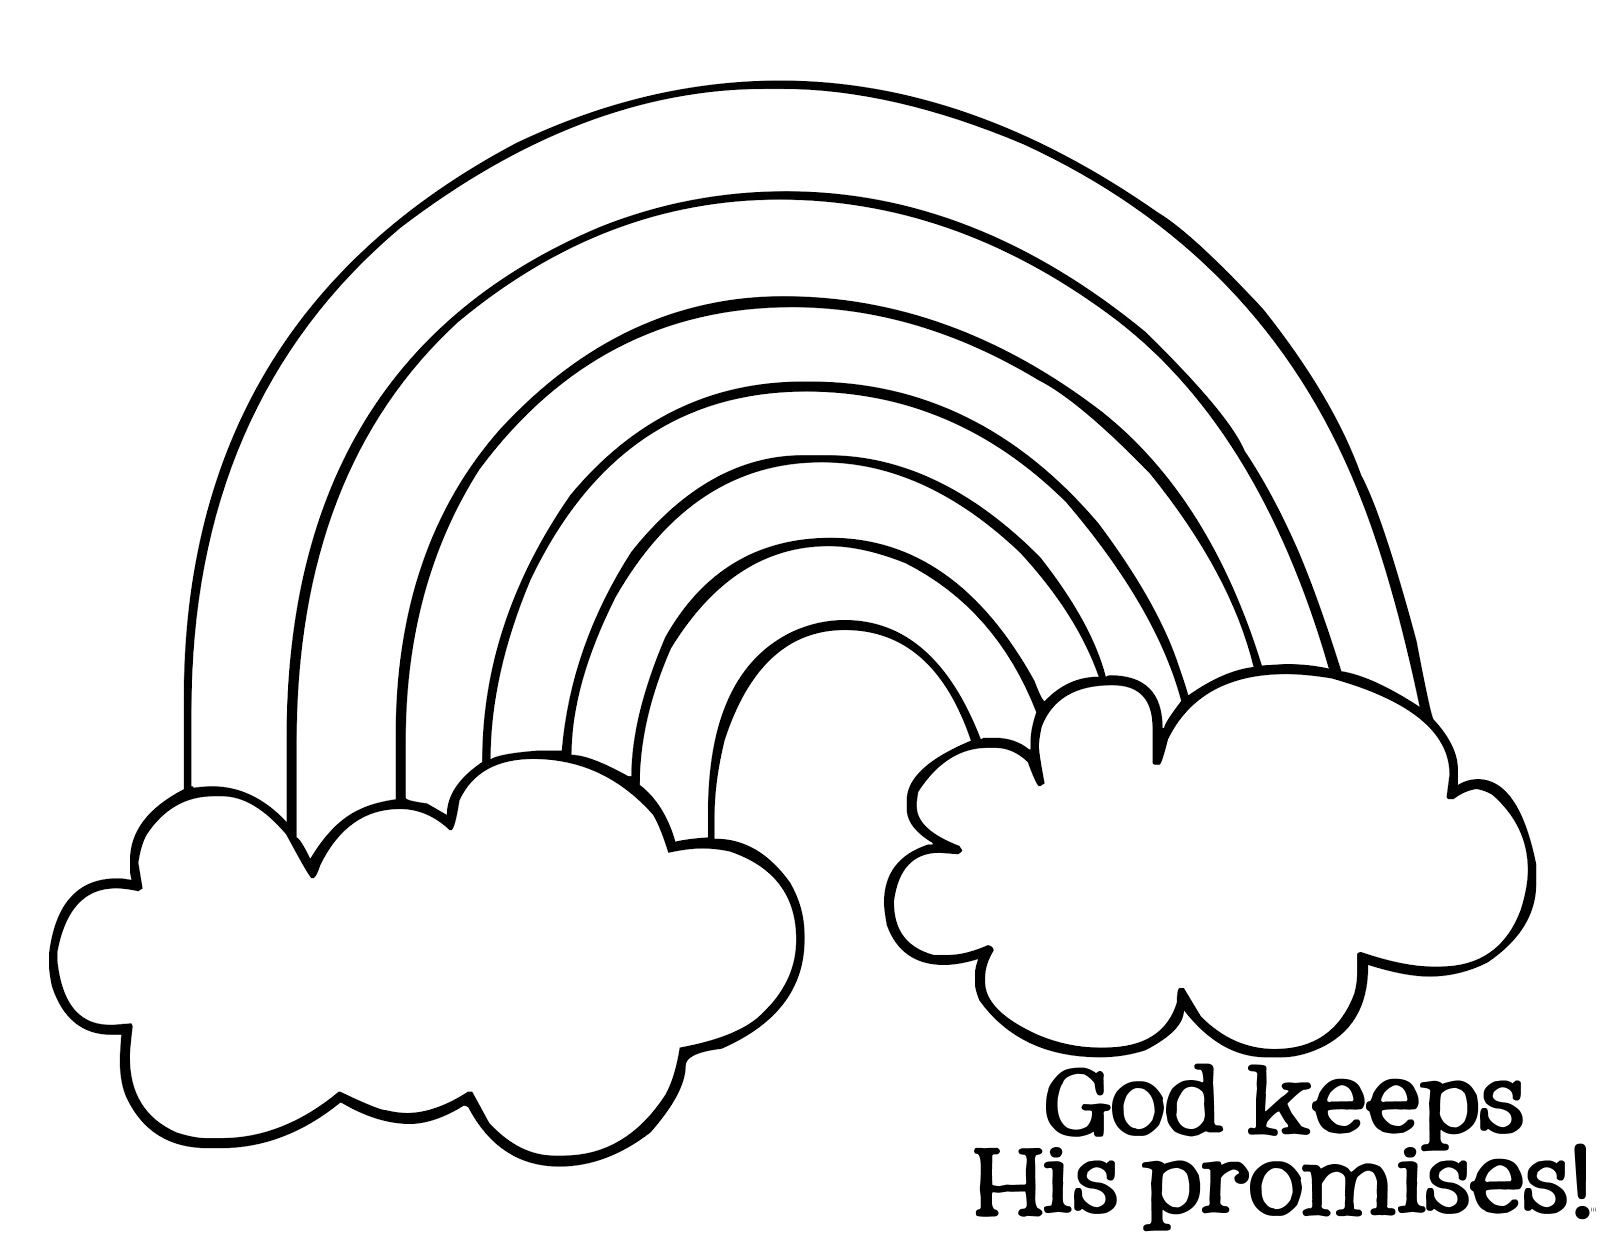 Coloring Pages Bible Color Sheets Love Your within Adult to Print to Print Of 28 Sunday School Coloring Pages for Preschoolers Jesus Loves Gallery